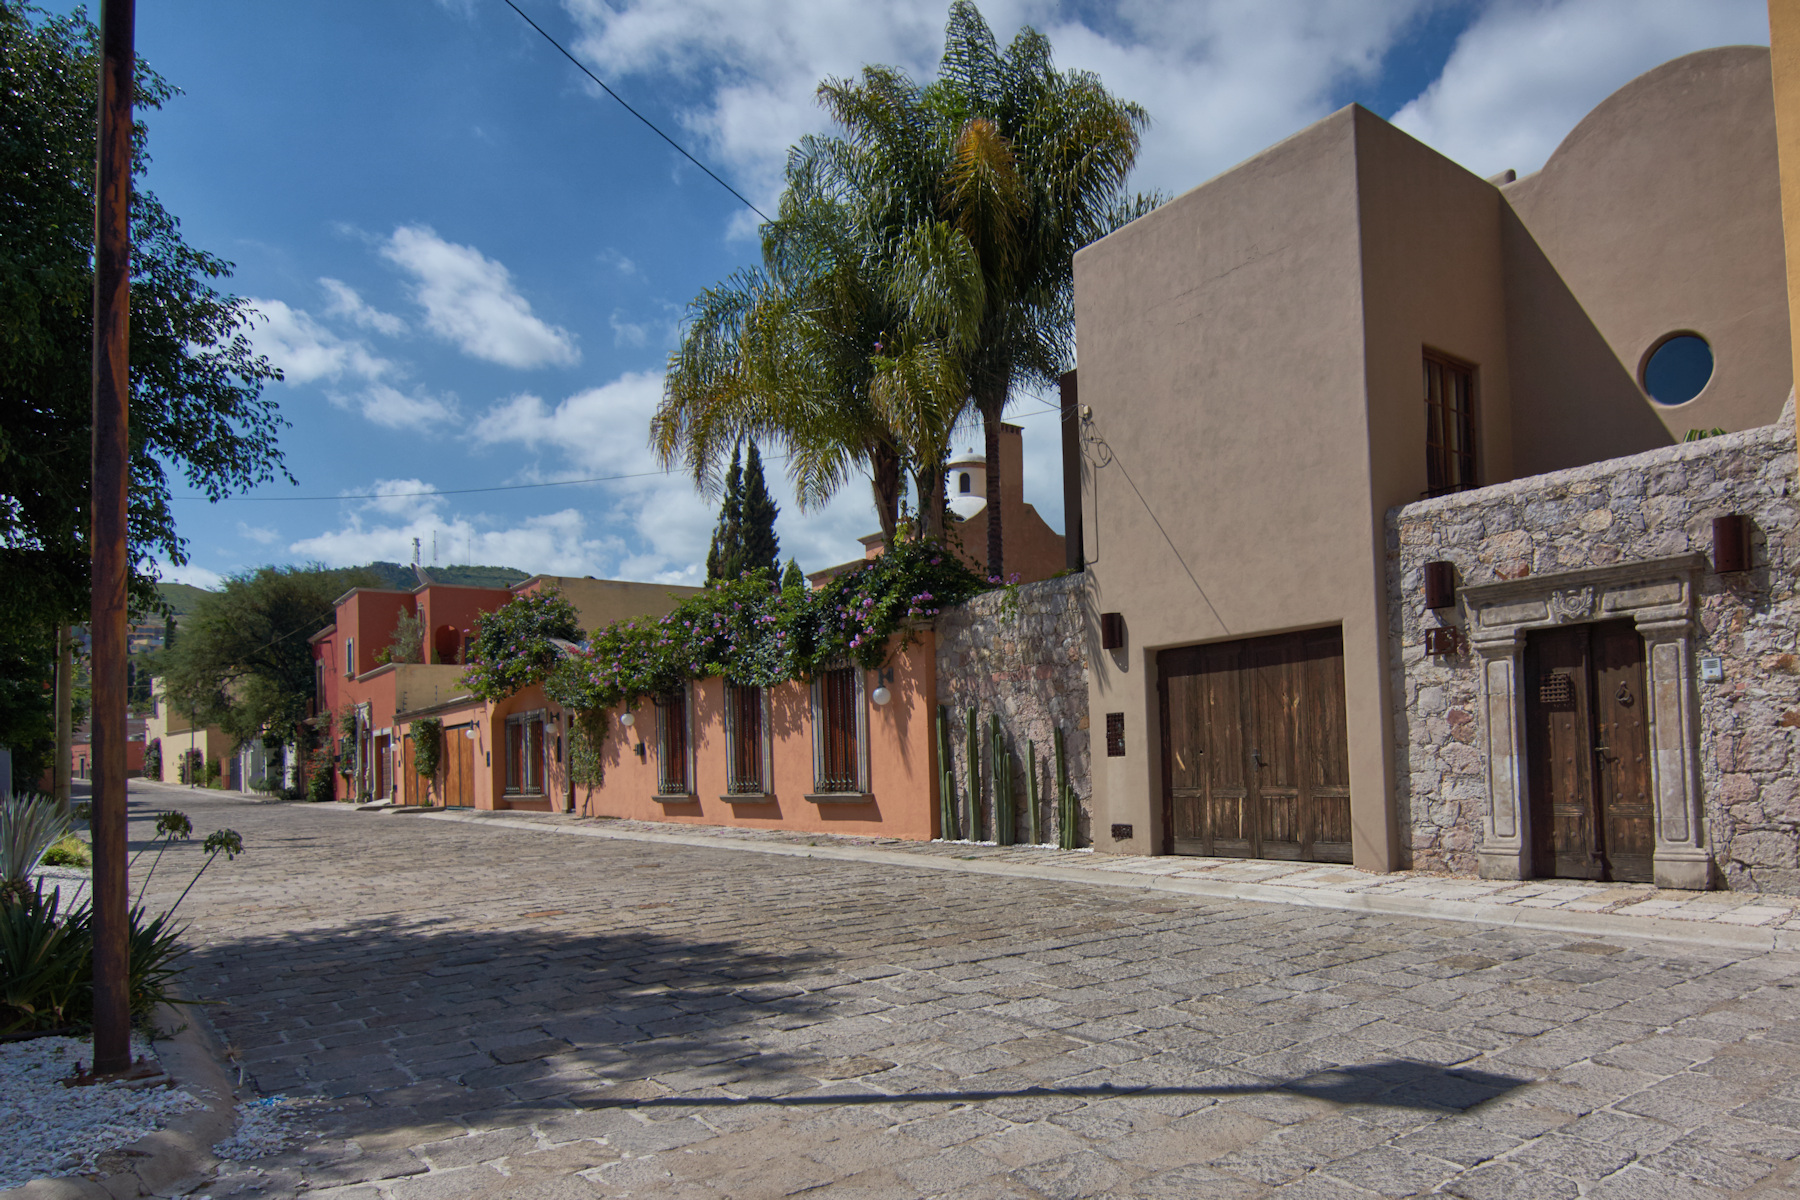 Single Family Home for Sale at Casa Guadiana Guadiana, San Miguel De Allende, Guanajuato Mexico